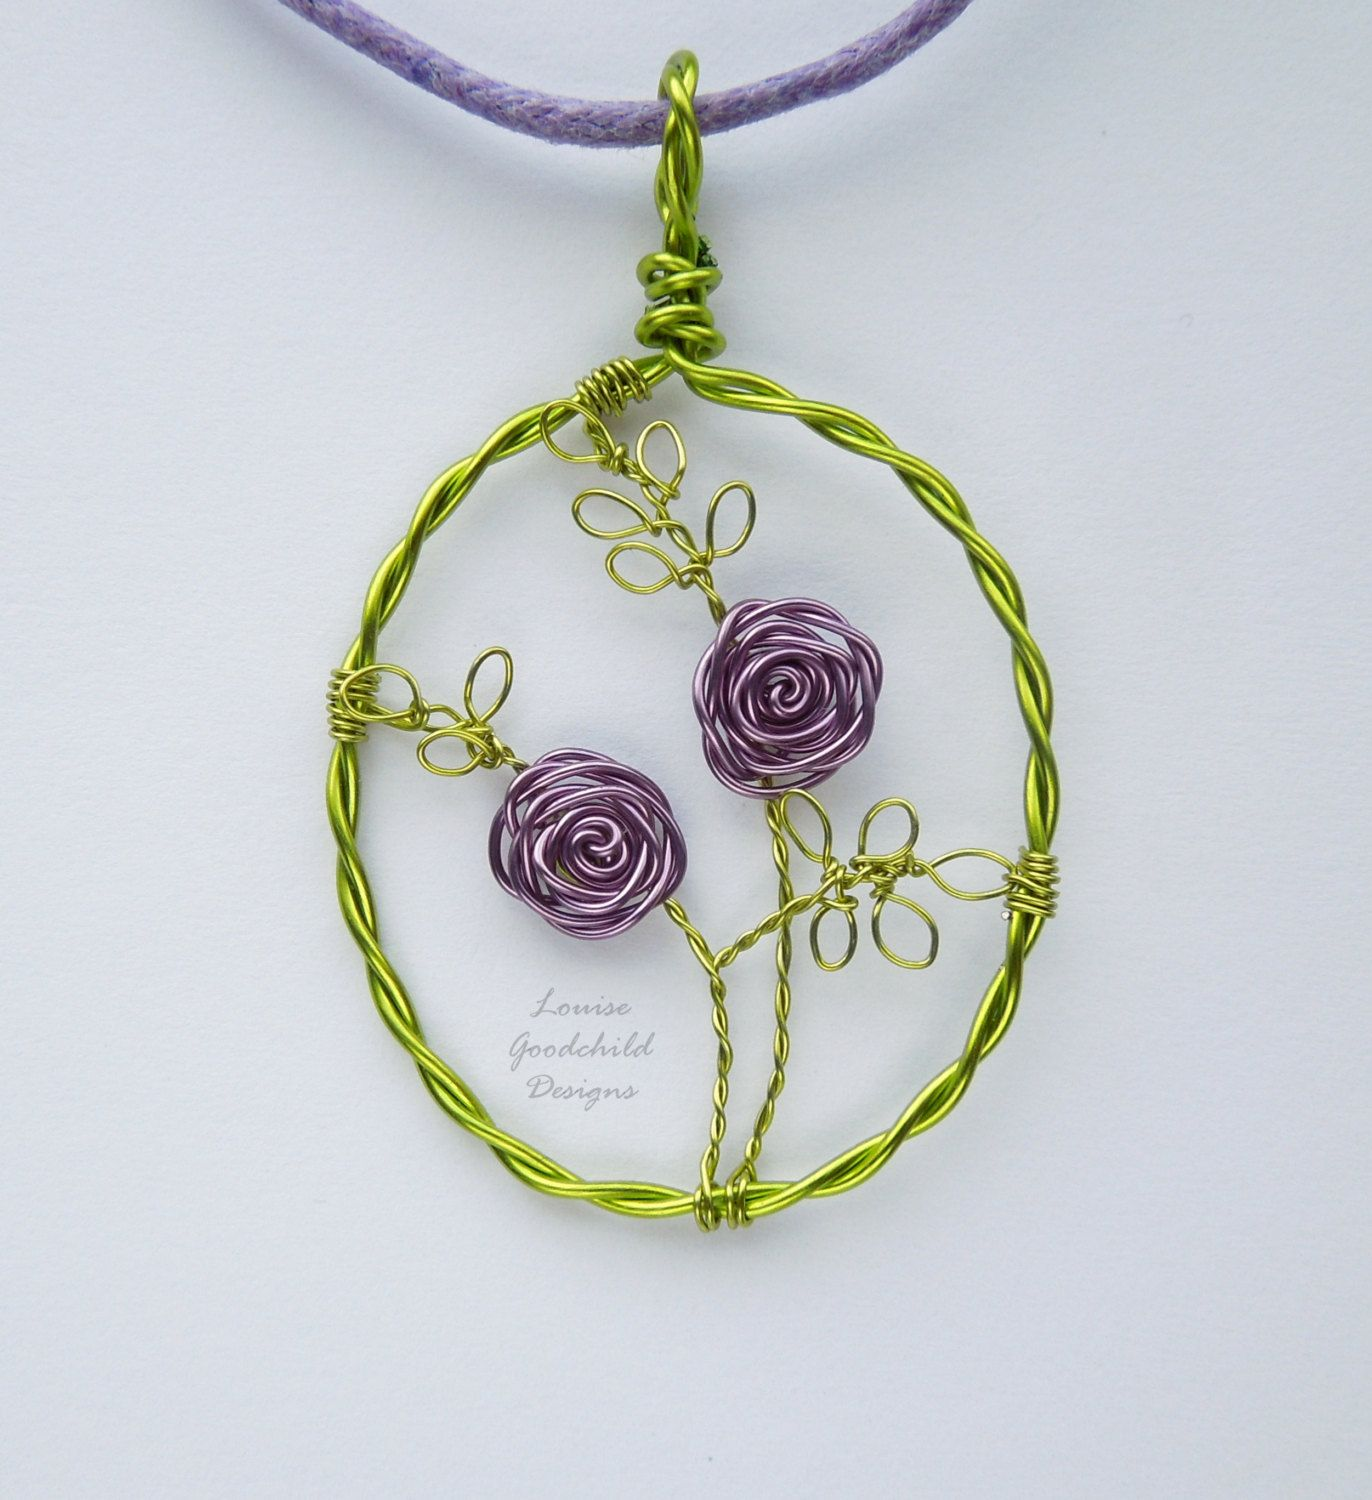 Lilac Rose pendant, wire rose pendant, flower jewelry, wire rose ...